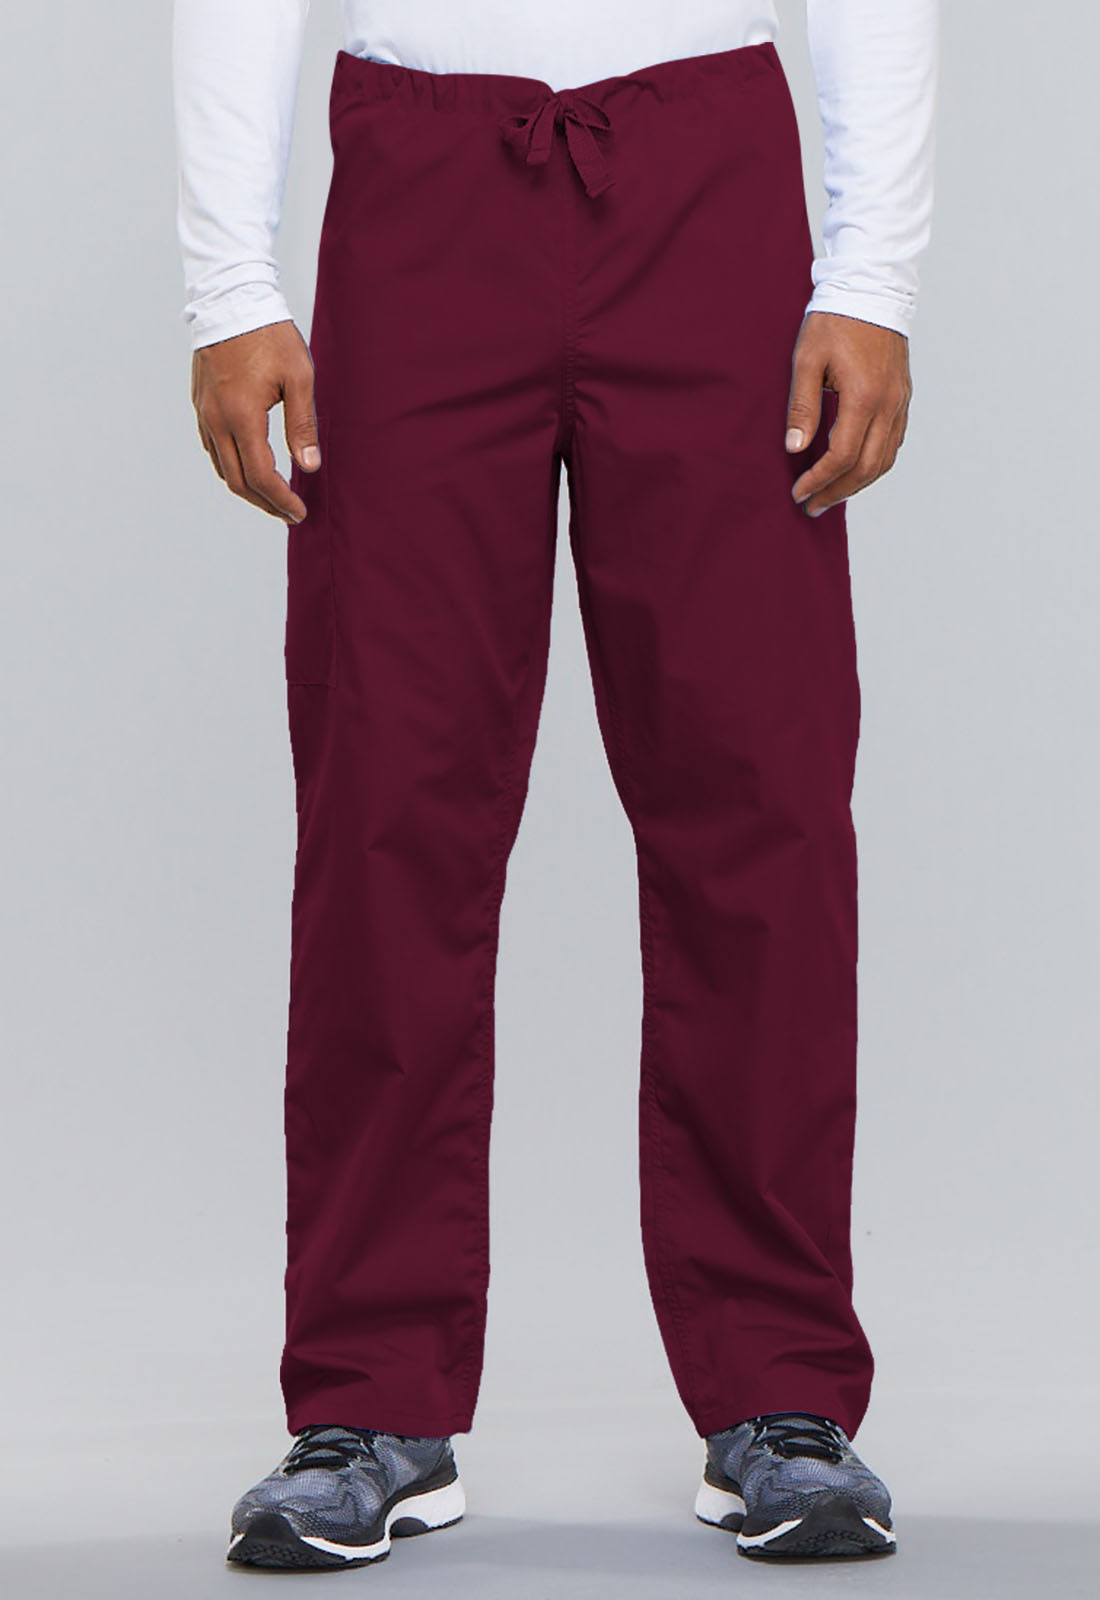 dae973a7405 WW Originals Unisex Drawstring Cargo Pant 4100-WINW from American Gipper